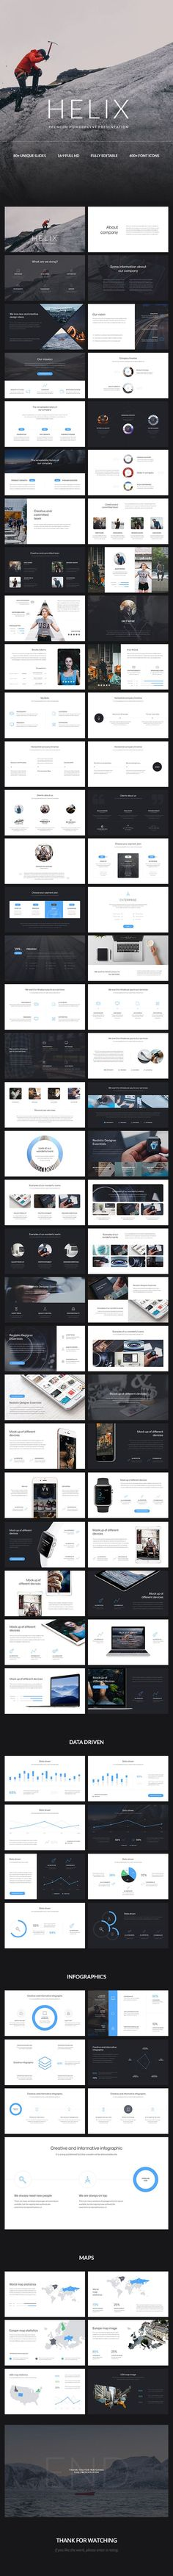 Helix PowerPoint Presentation #deck #design #digital • Available here → http://graphicriver.net/item/helix-powerpoint-presentation/15473833?ref=pxcr #deckdesigns